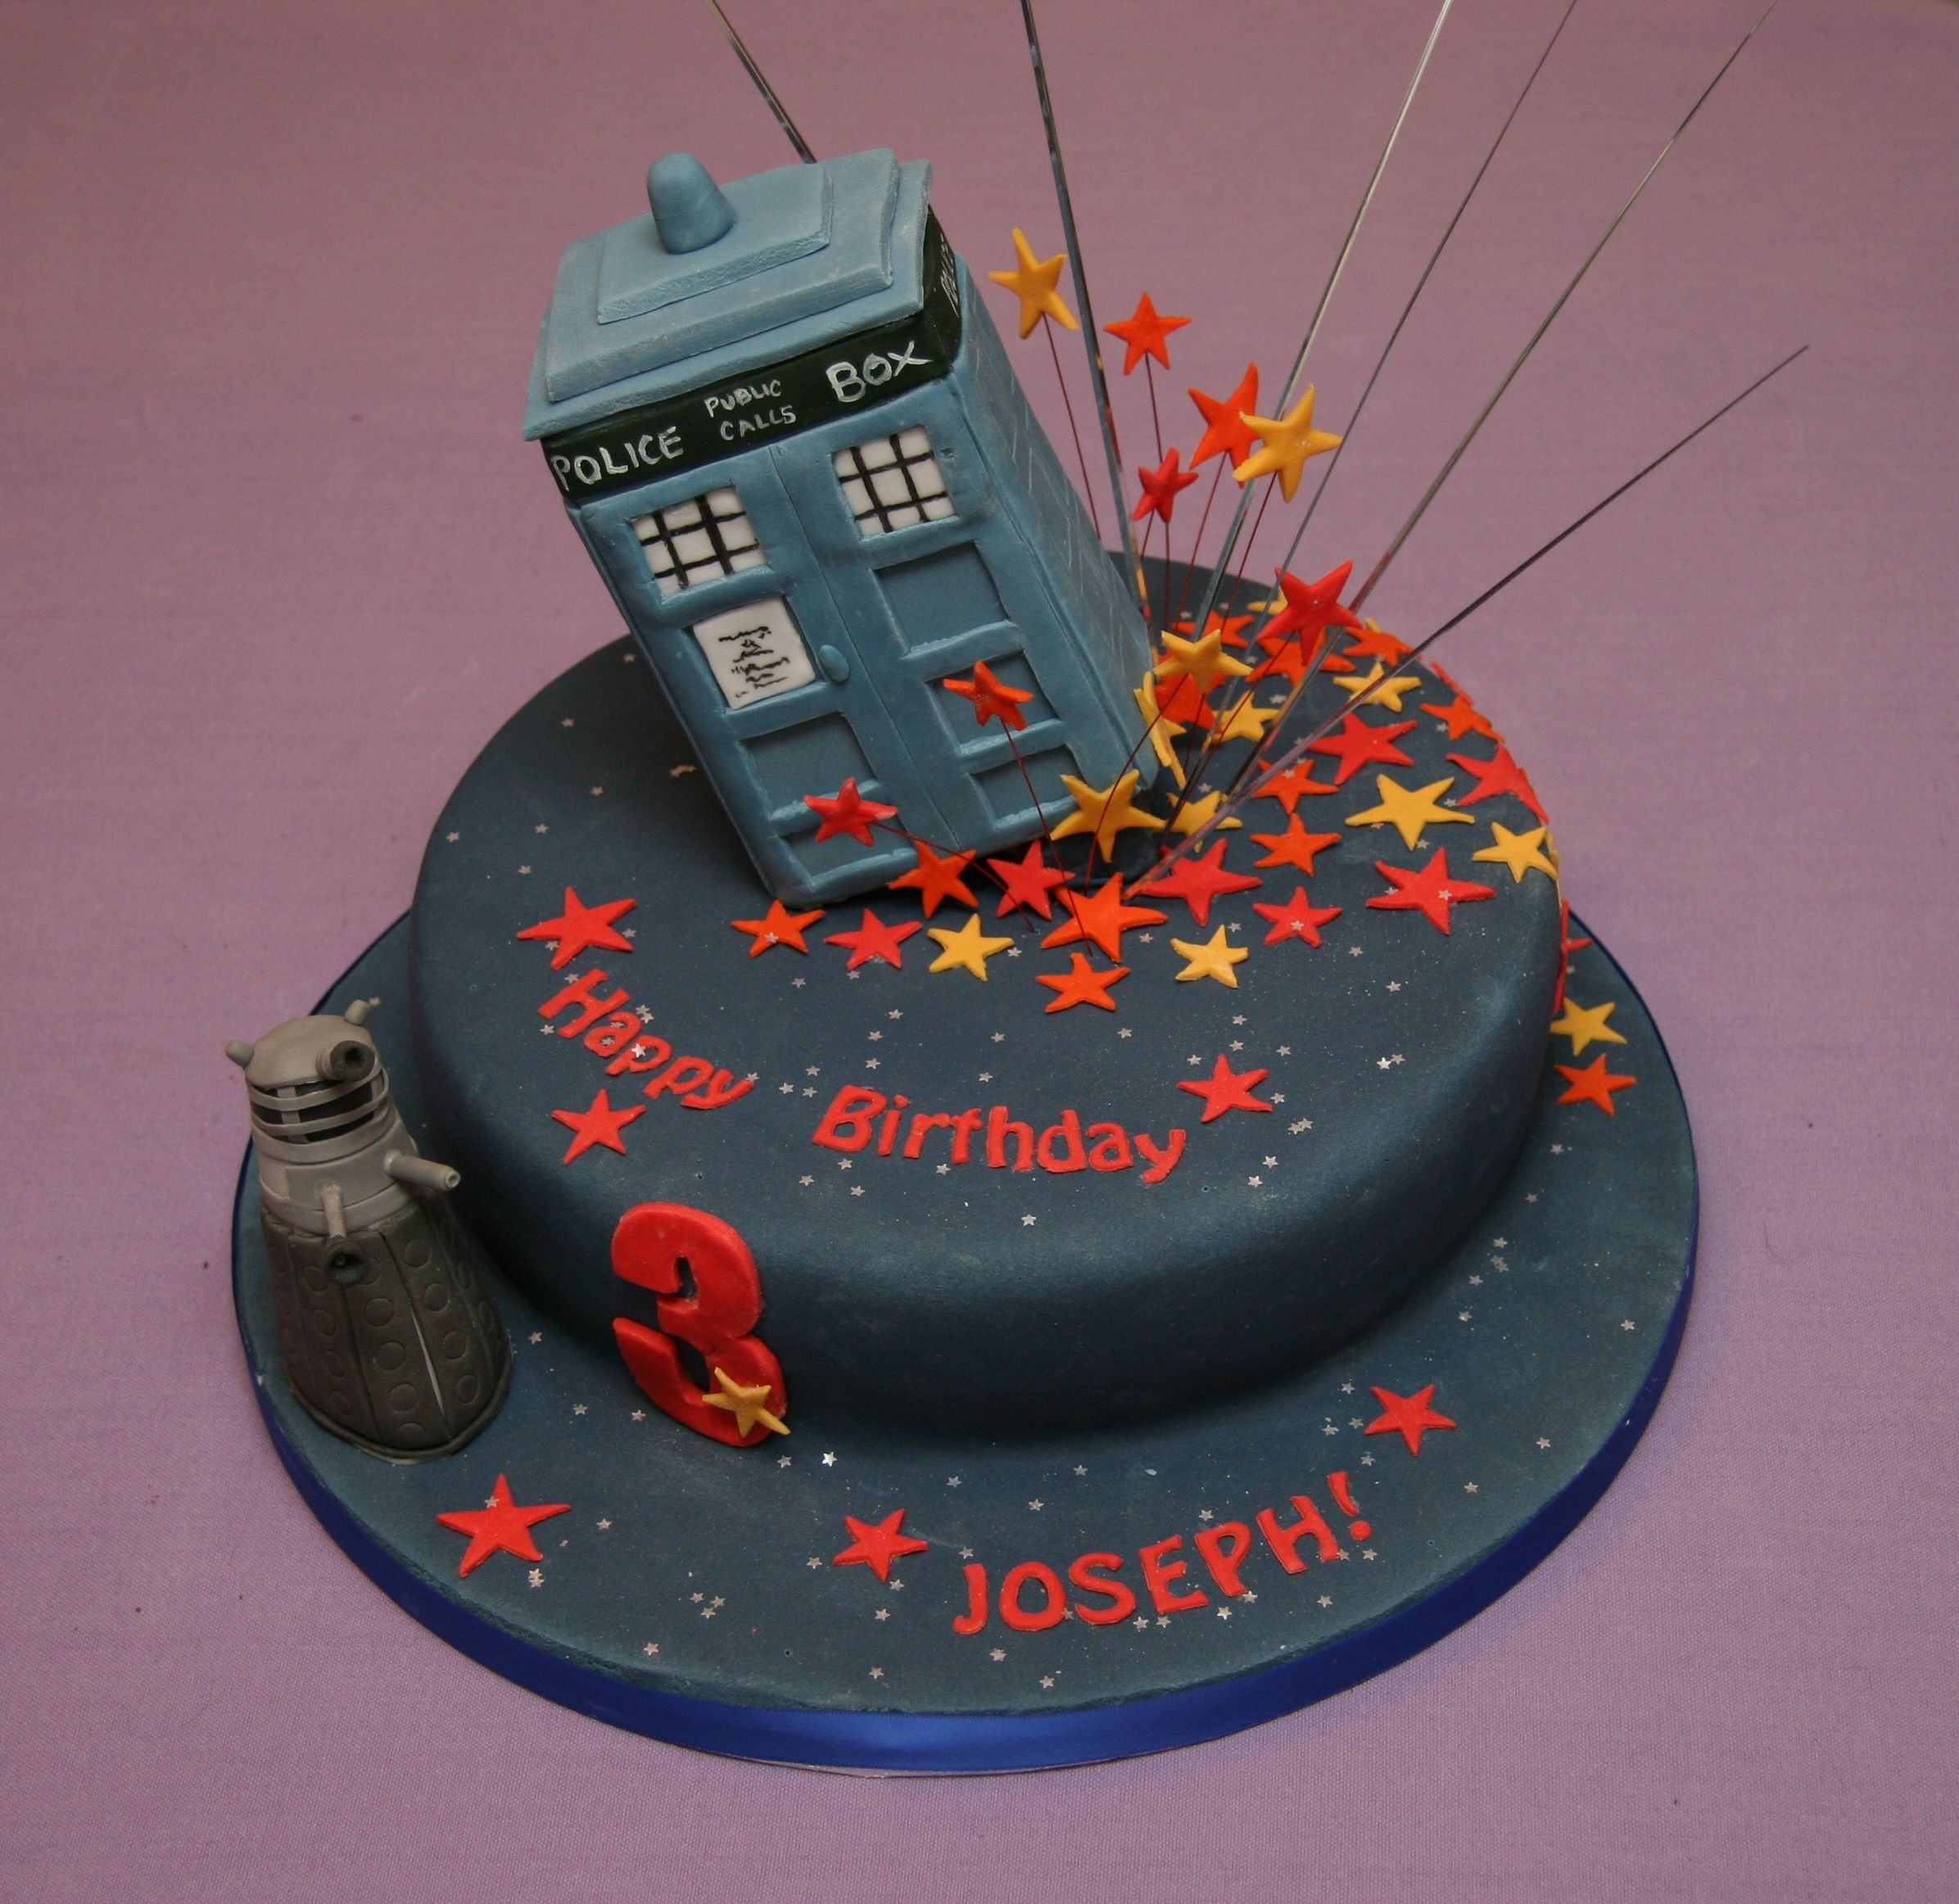 This will be Alexs birthday cake Dr Who Party Time